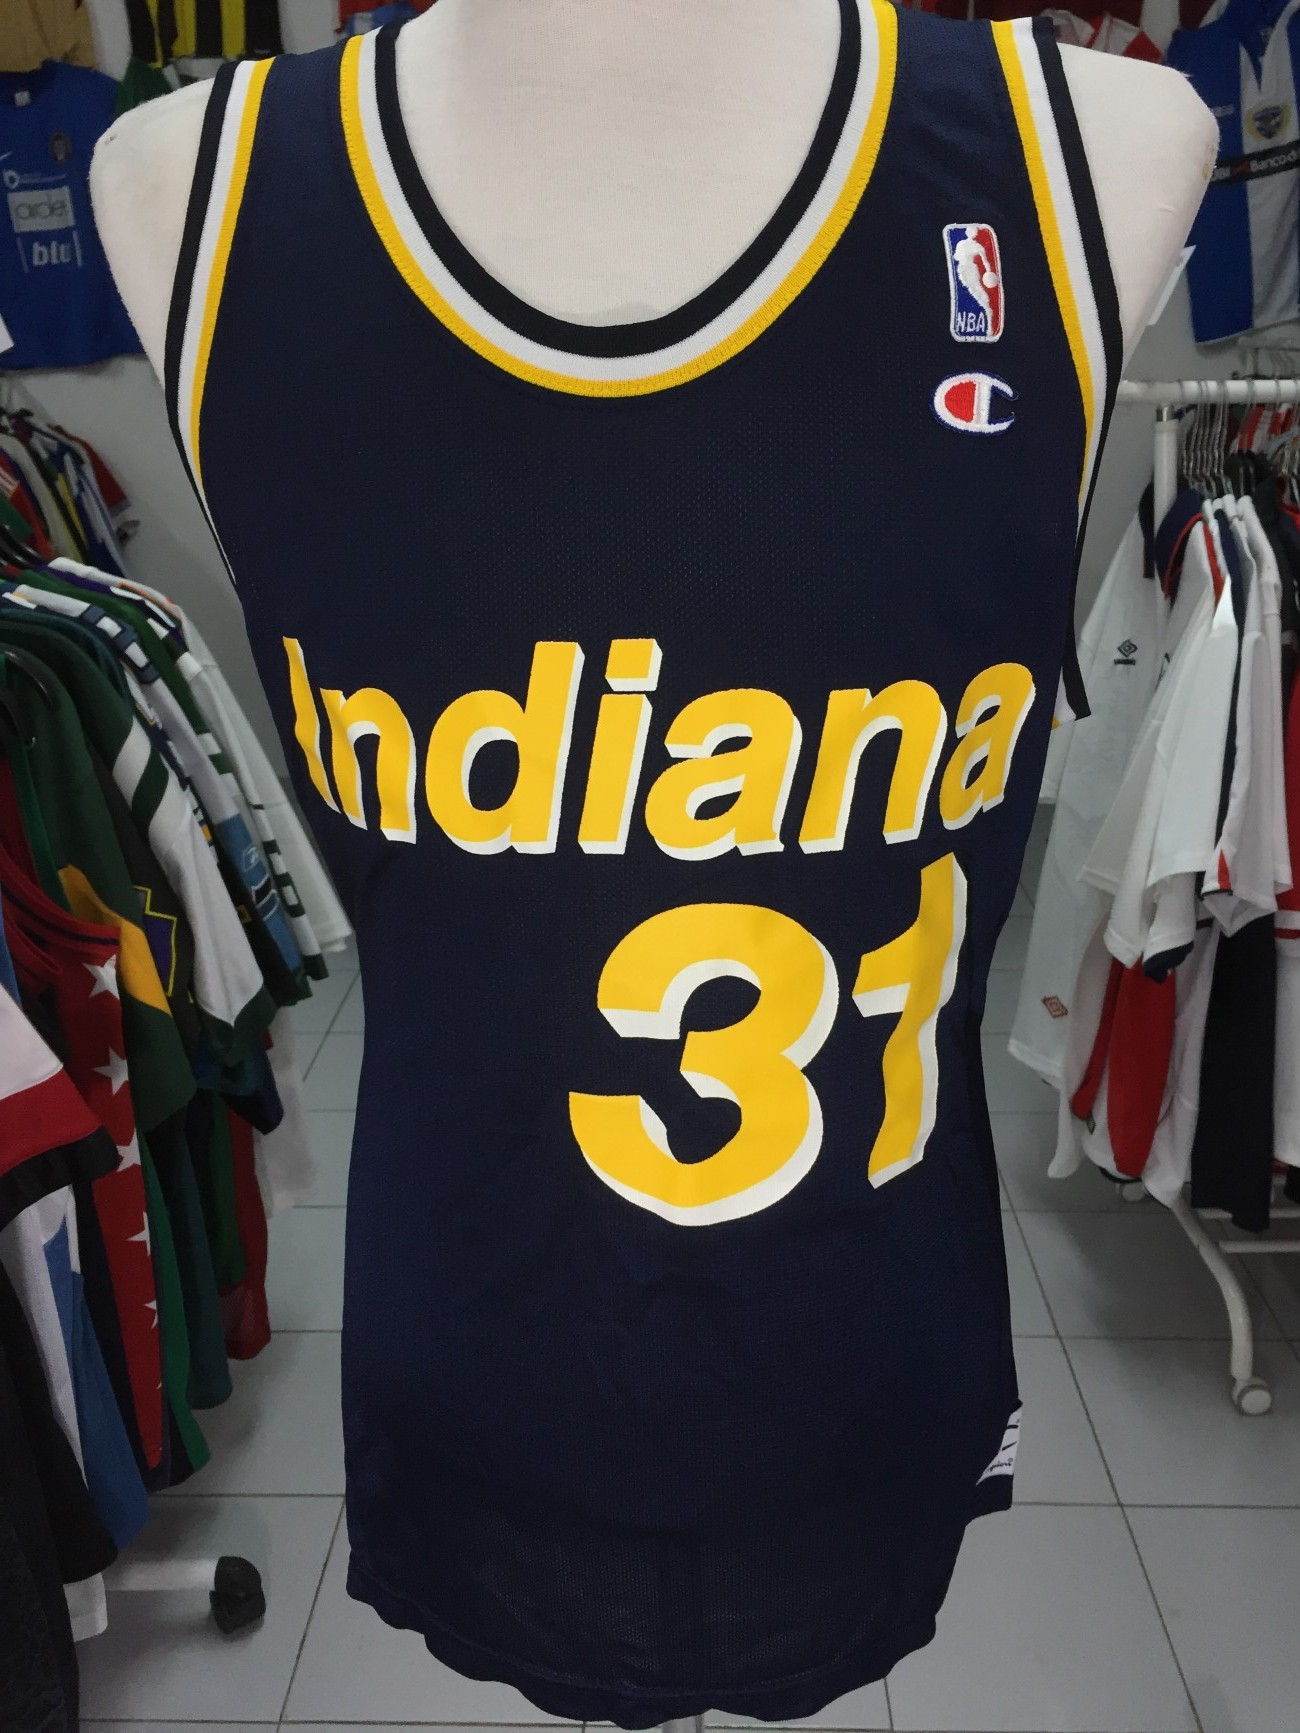 Indiana Pacers Home Shirt 90s (48)  31 Miller NBA Jersey Champion ... 4a39744f9